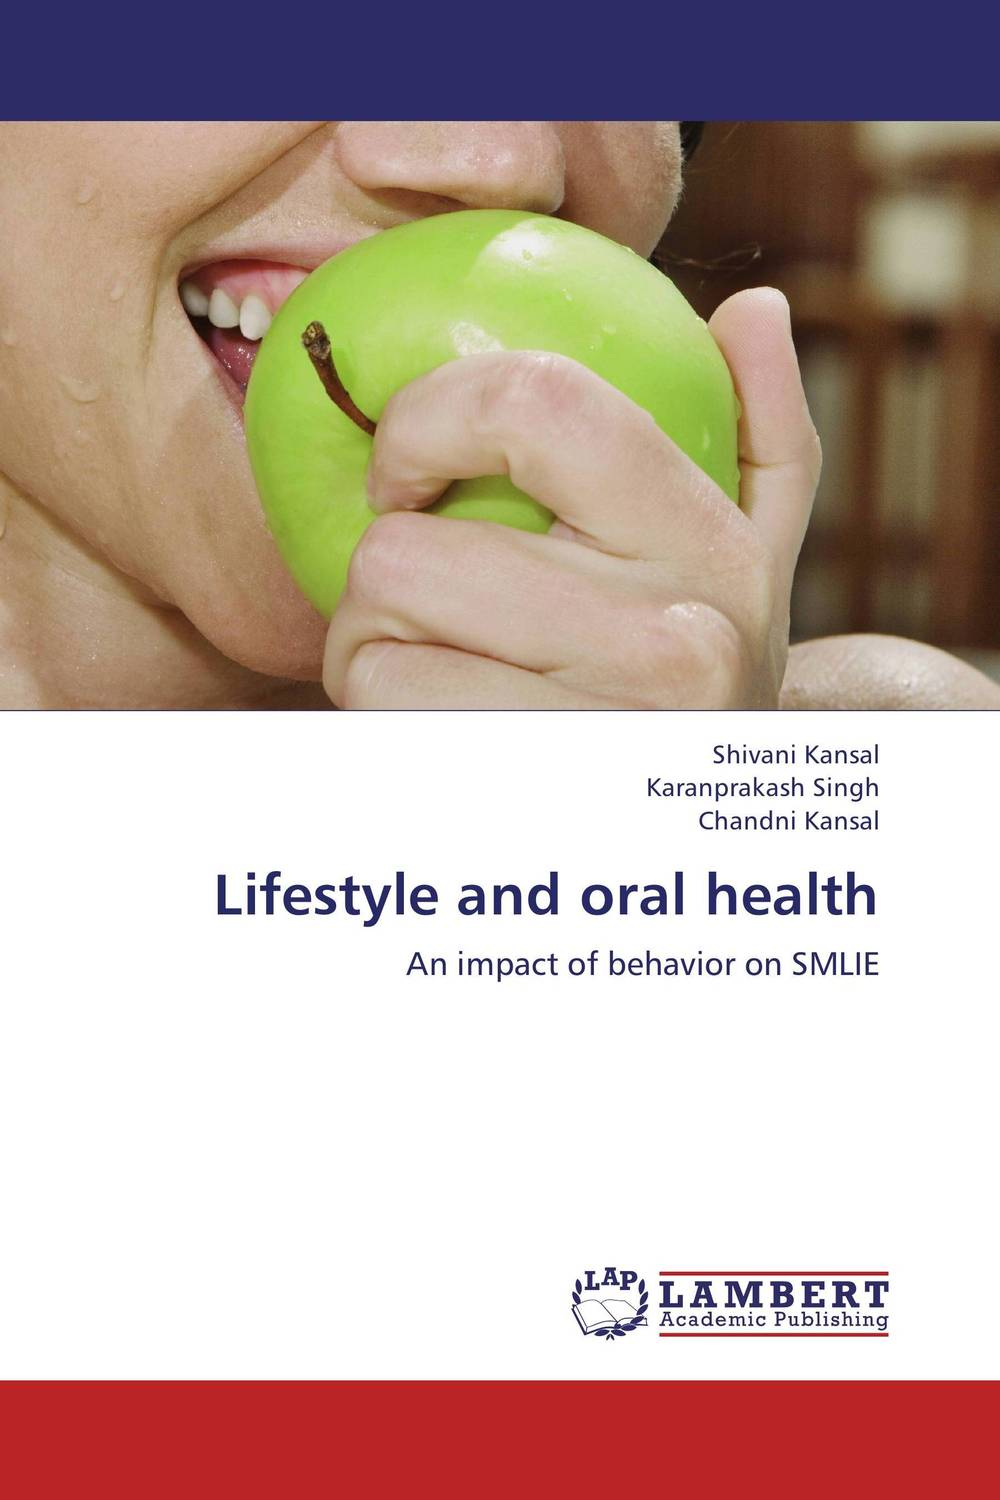 Lifestyle and oral health